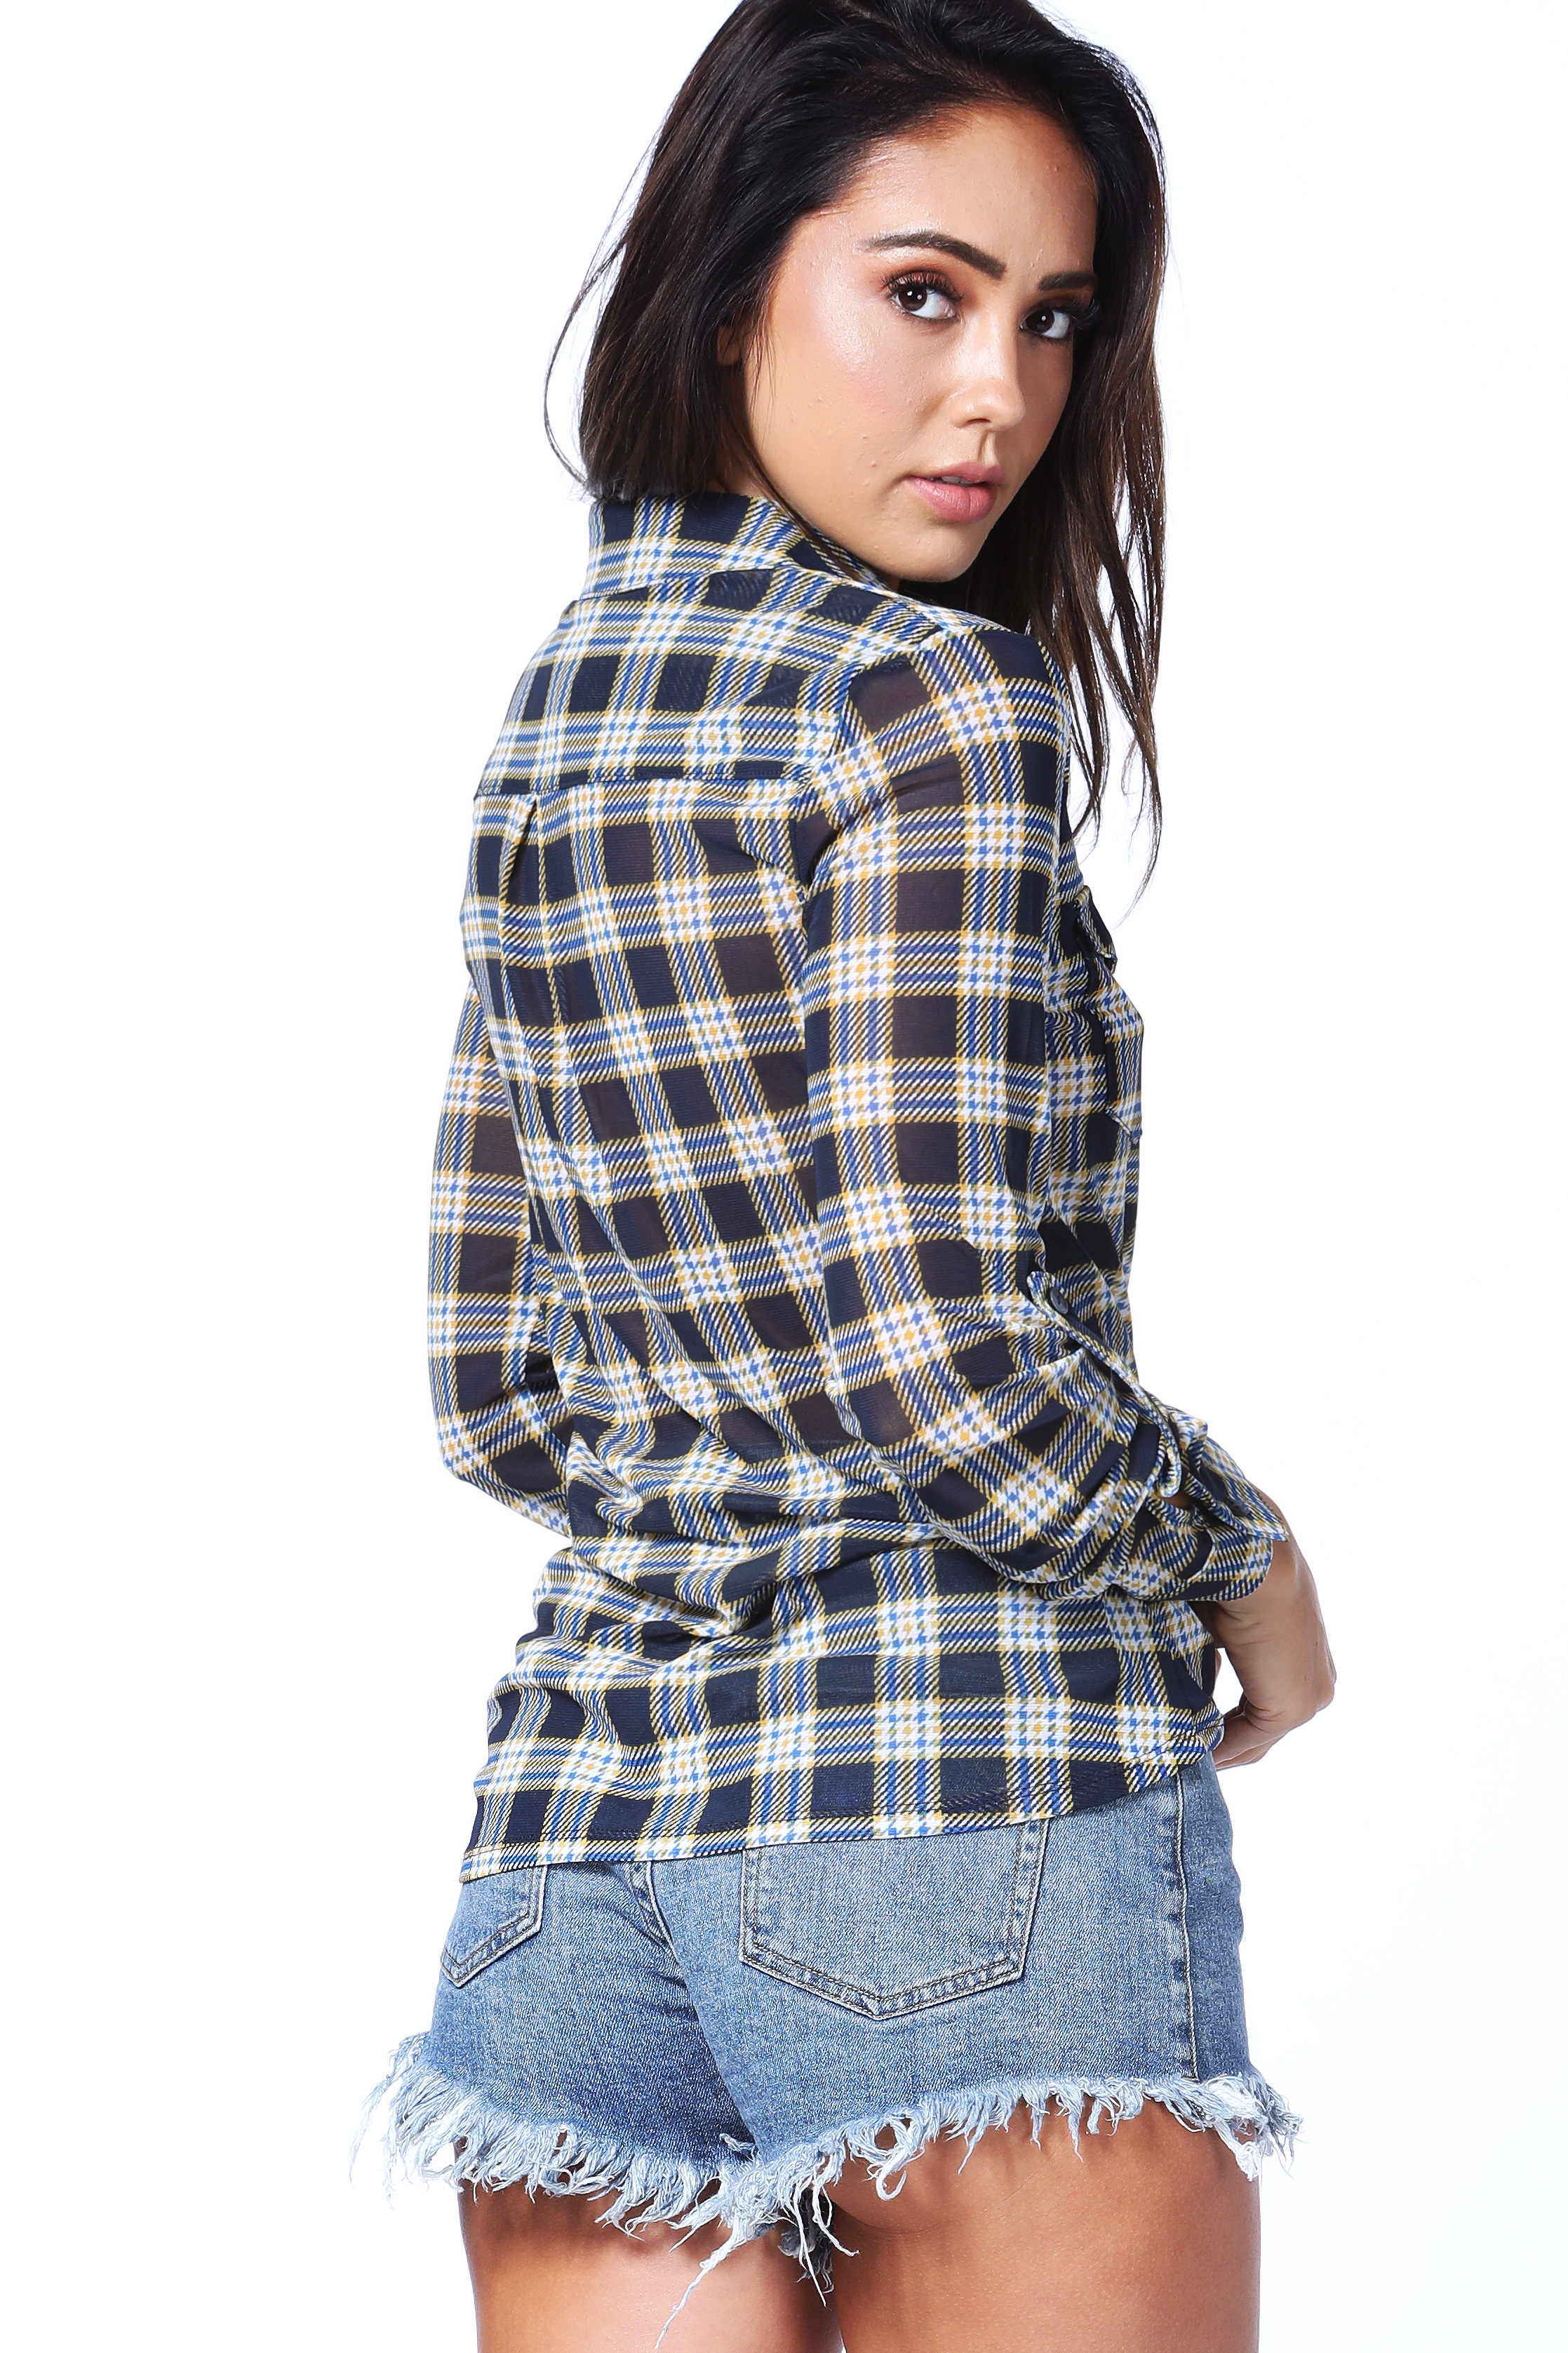 Glen Plaid Long Sleeve Top